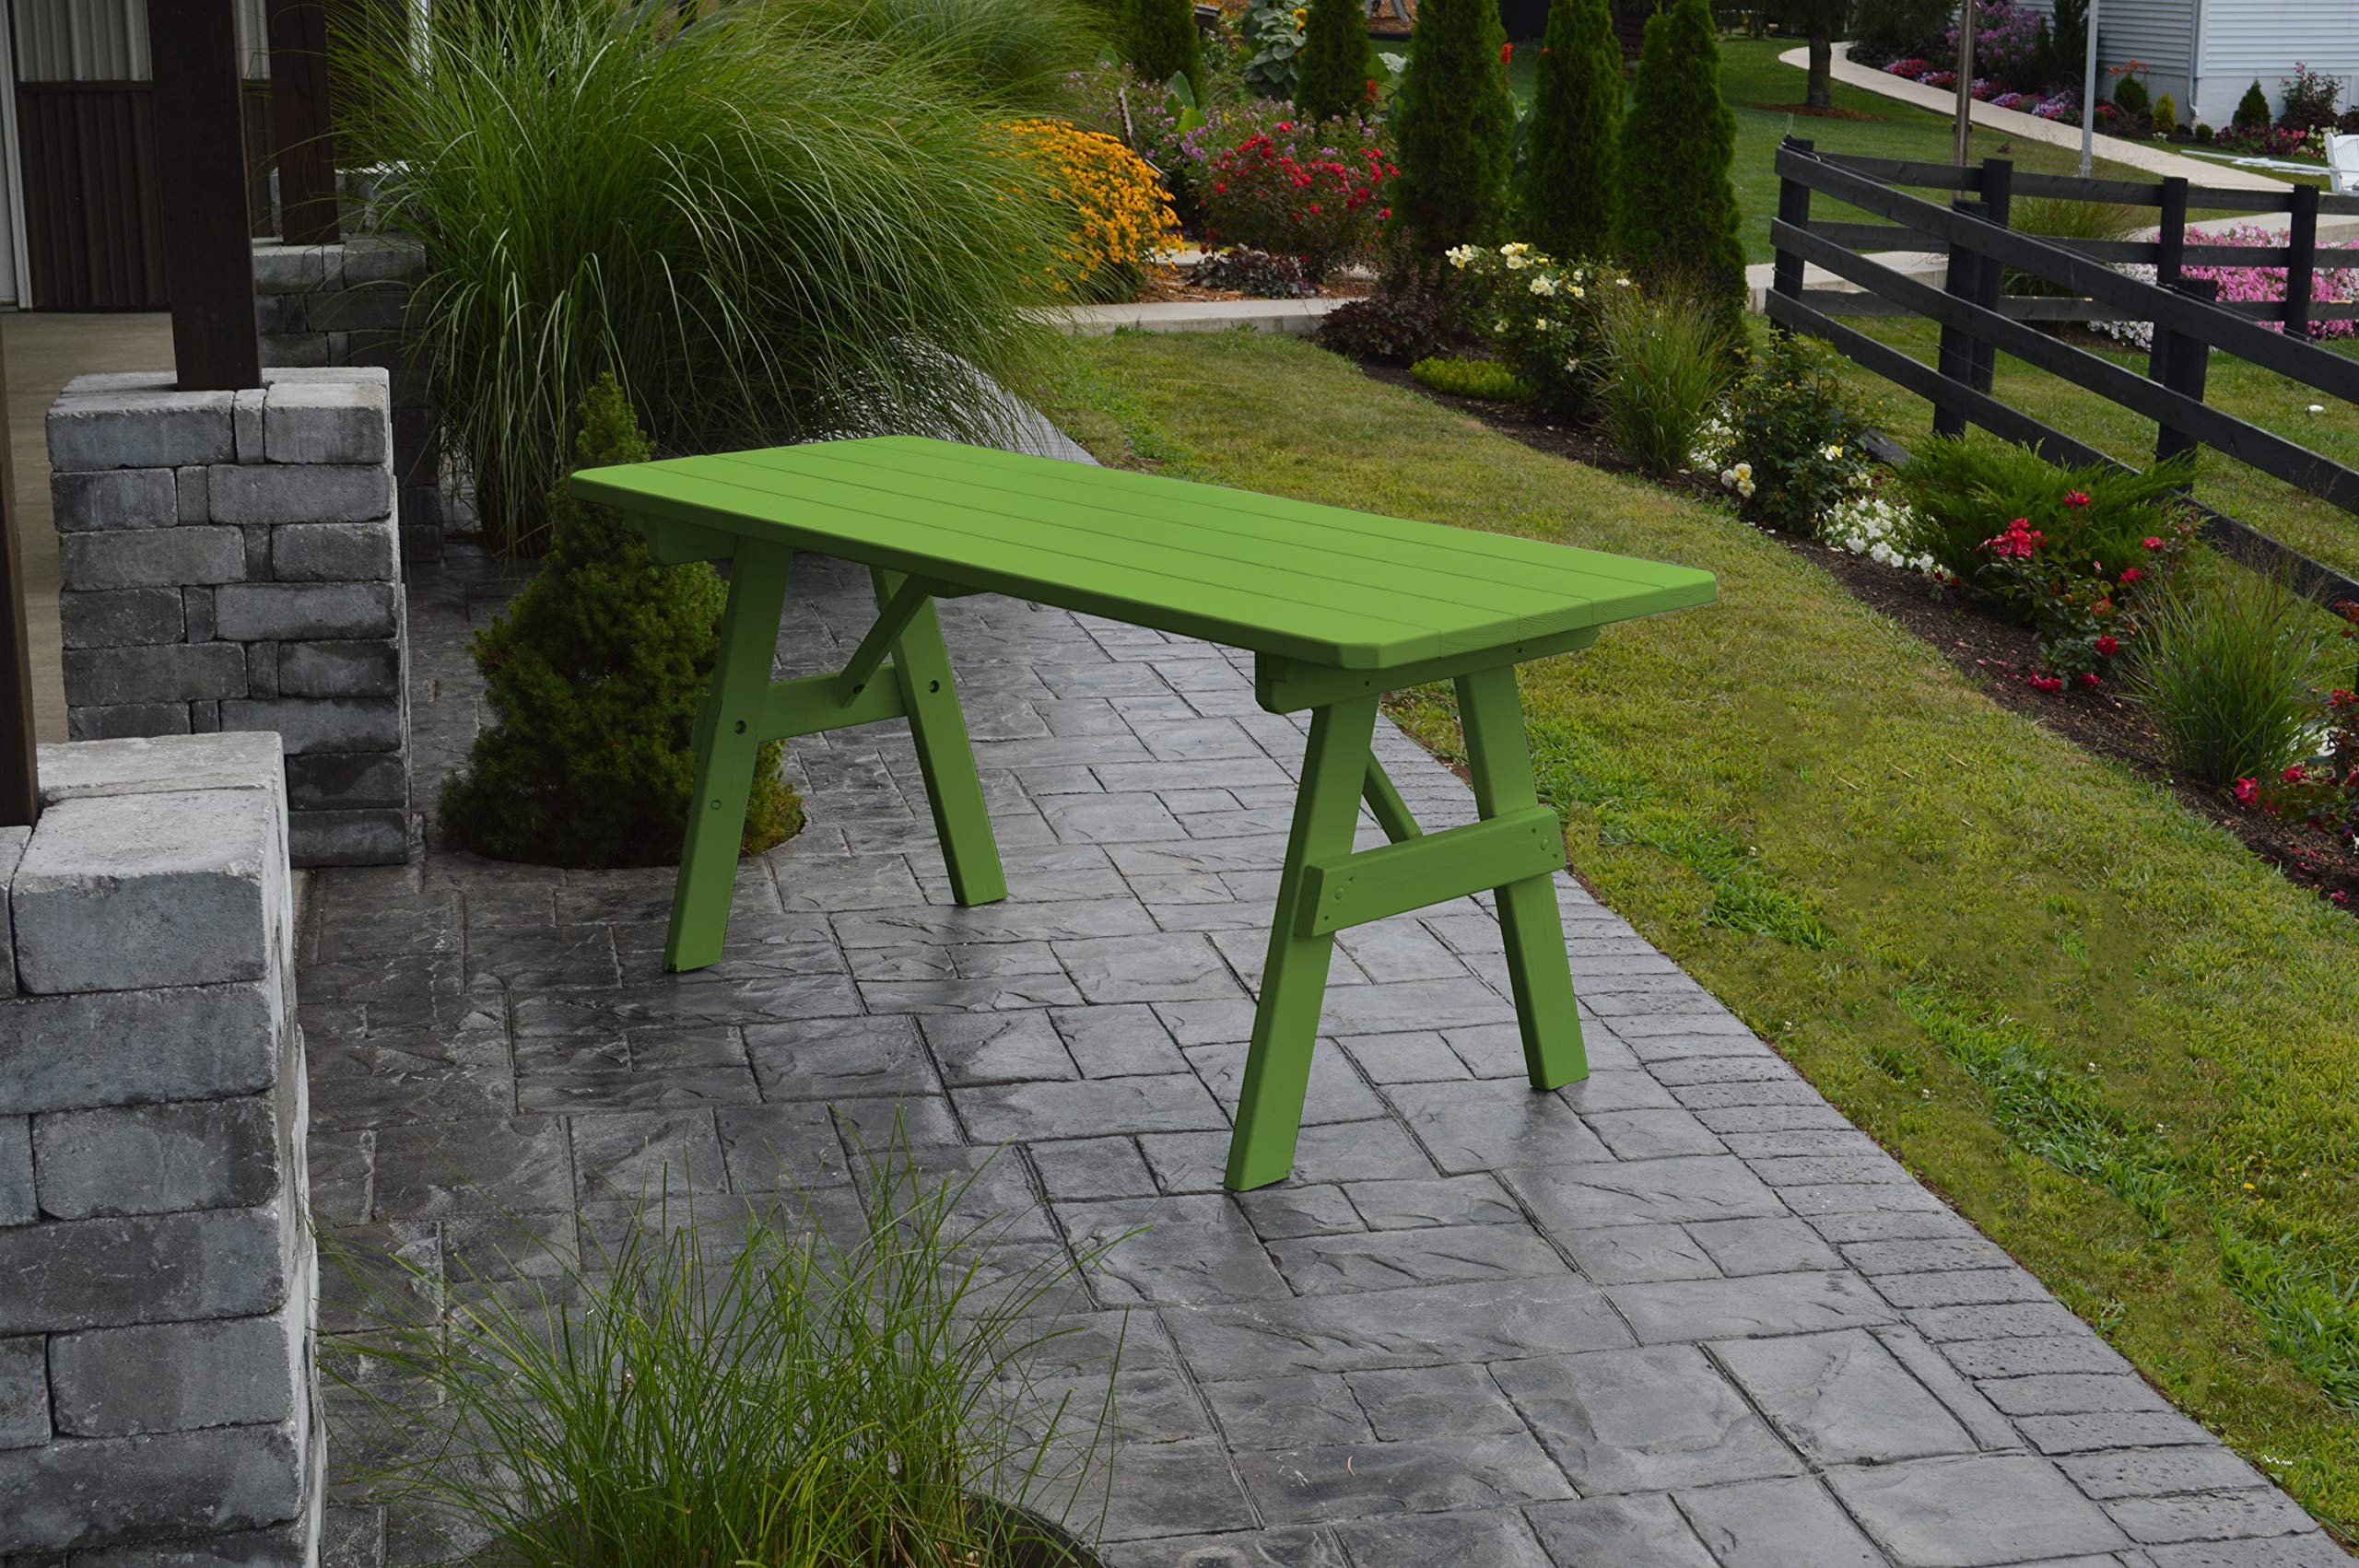 A & L Furniture Yellow Pine Traditional Picnic Table (No Hole), 8', Lime by A&L Furniture Co. (Image #1)